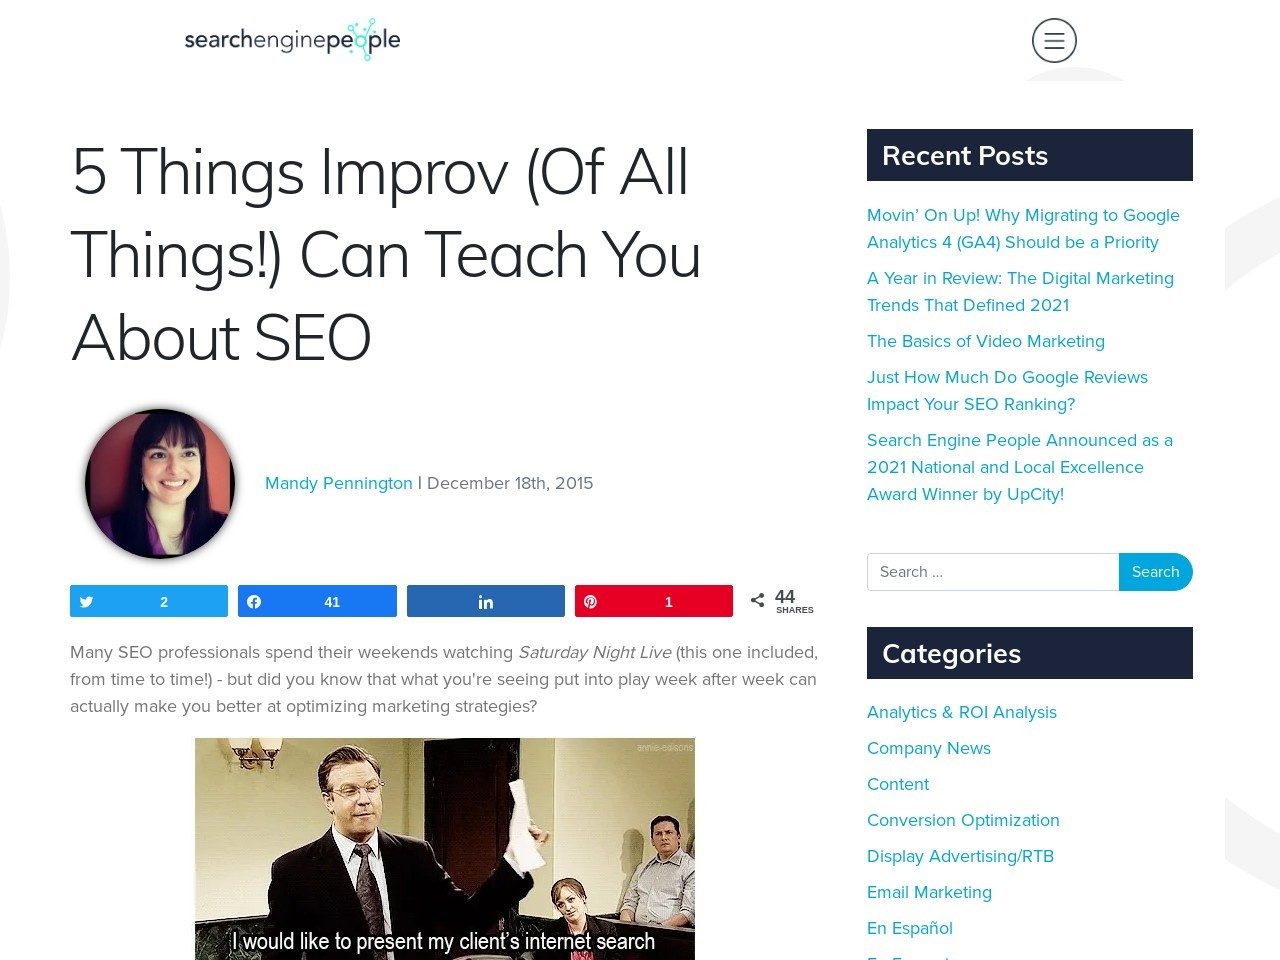 5 Things Improv (Of All Things!) Can Teach You About SEO